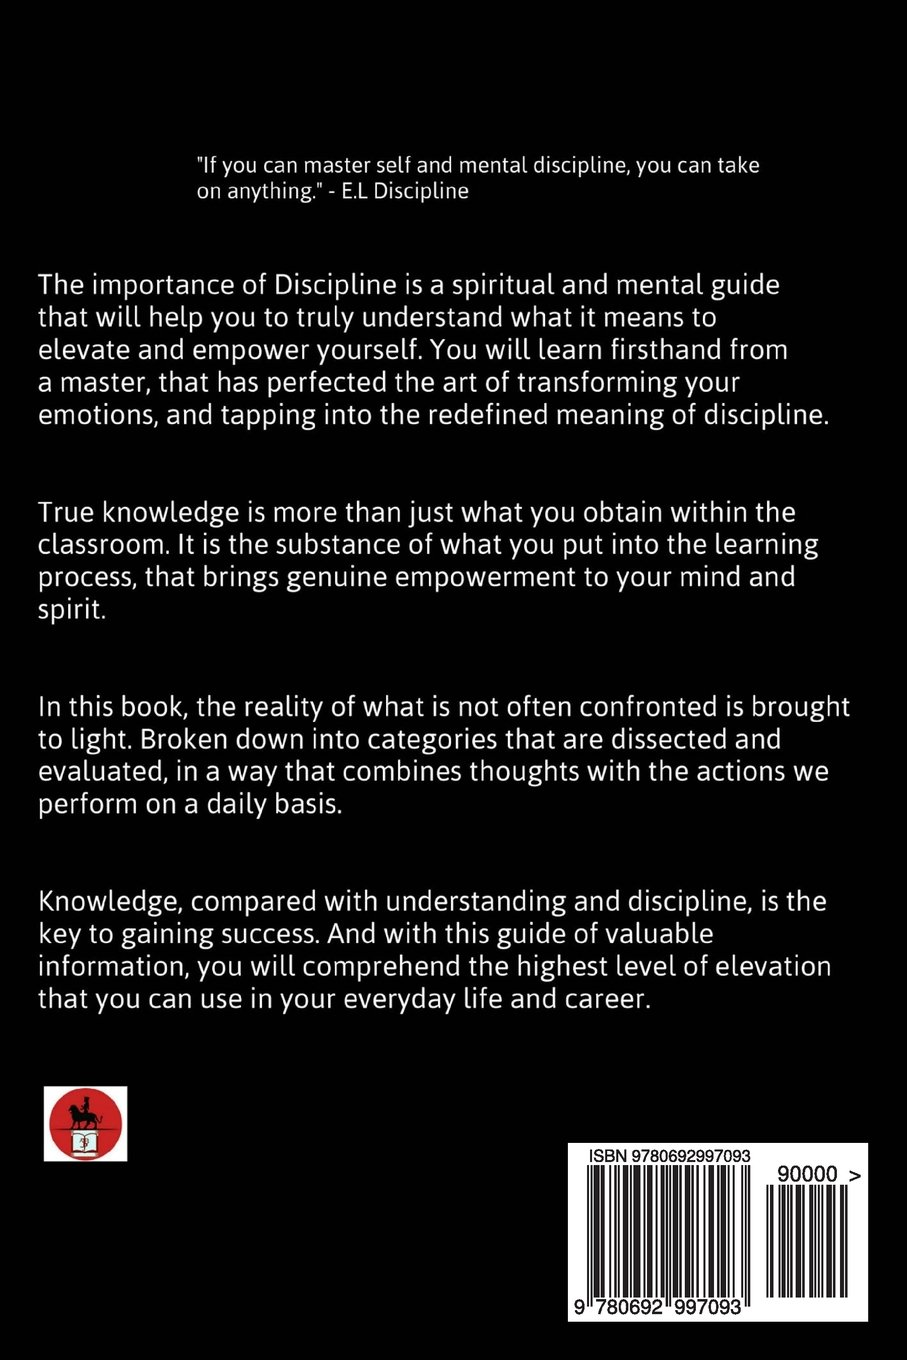 importance of discipline